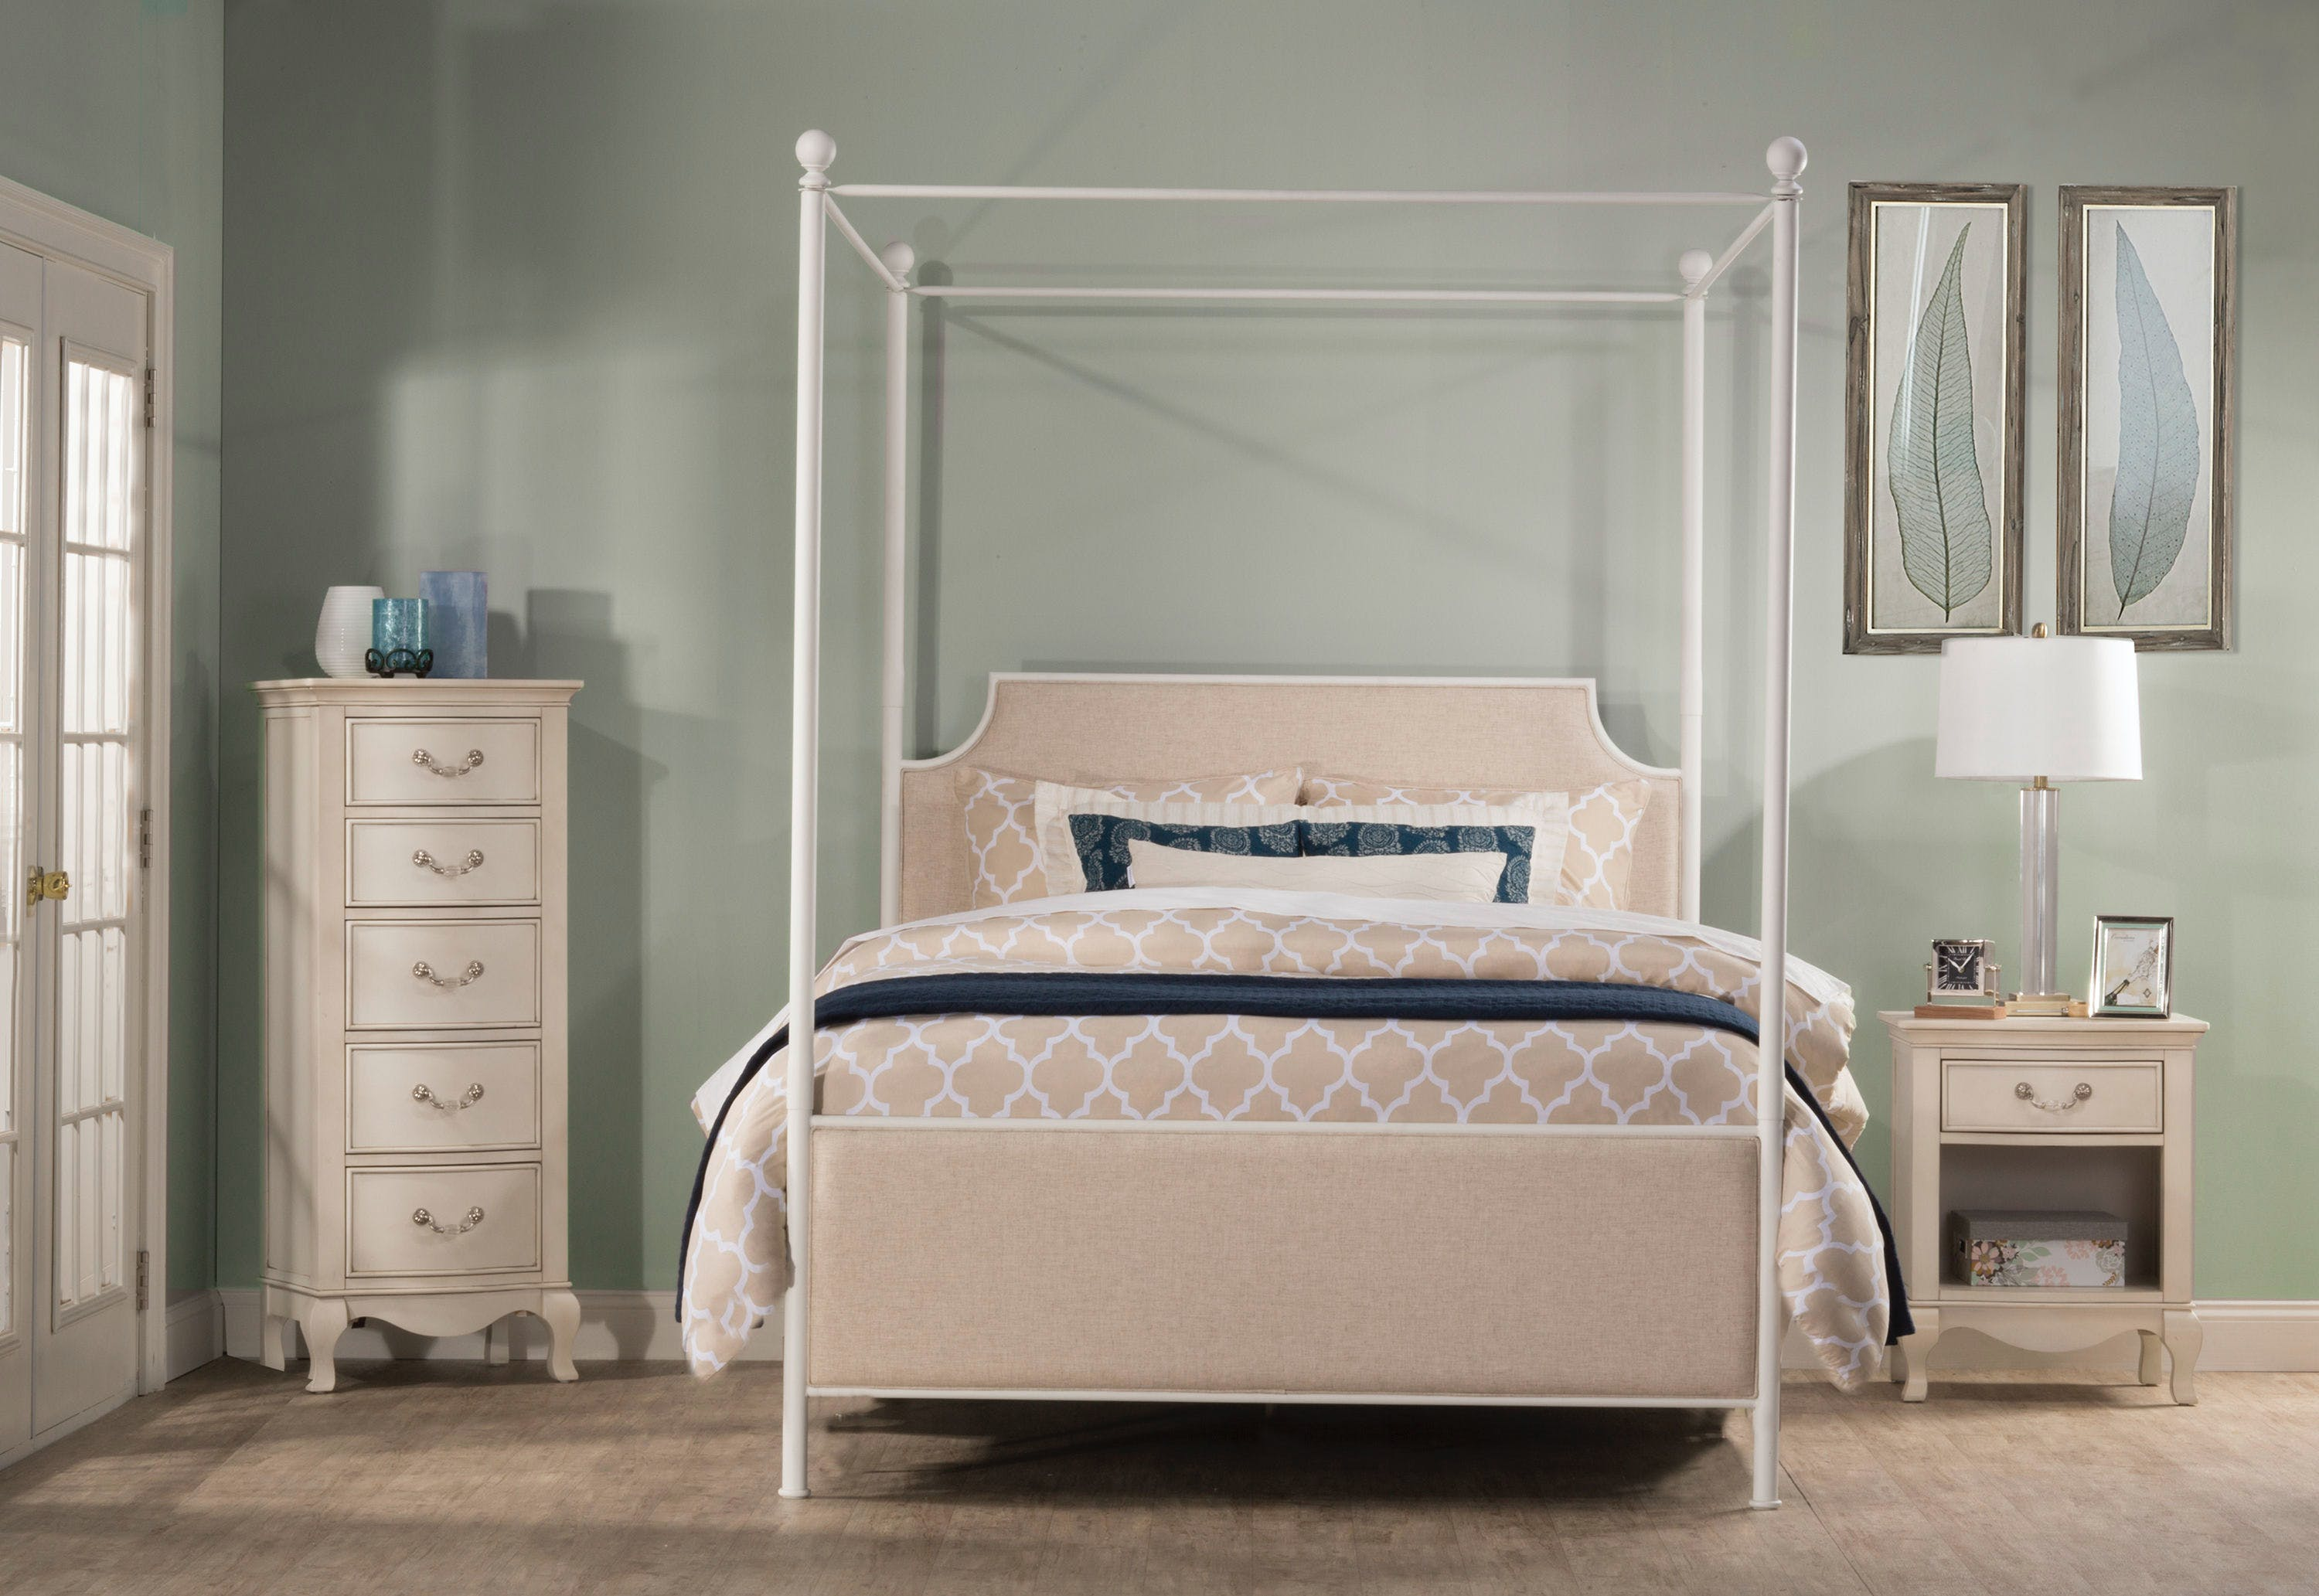 Hillsdale Furniture Bedroom Mcarthur Canopy Bed Set Off White Finish Queen Bed Frame Included